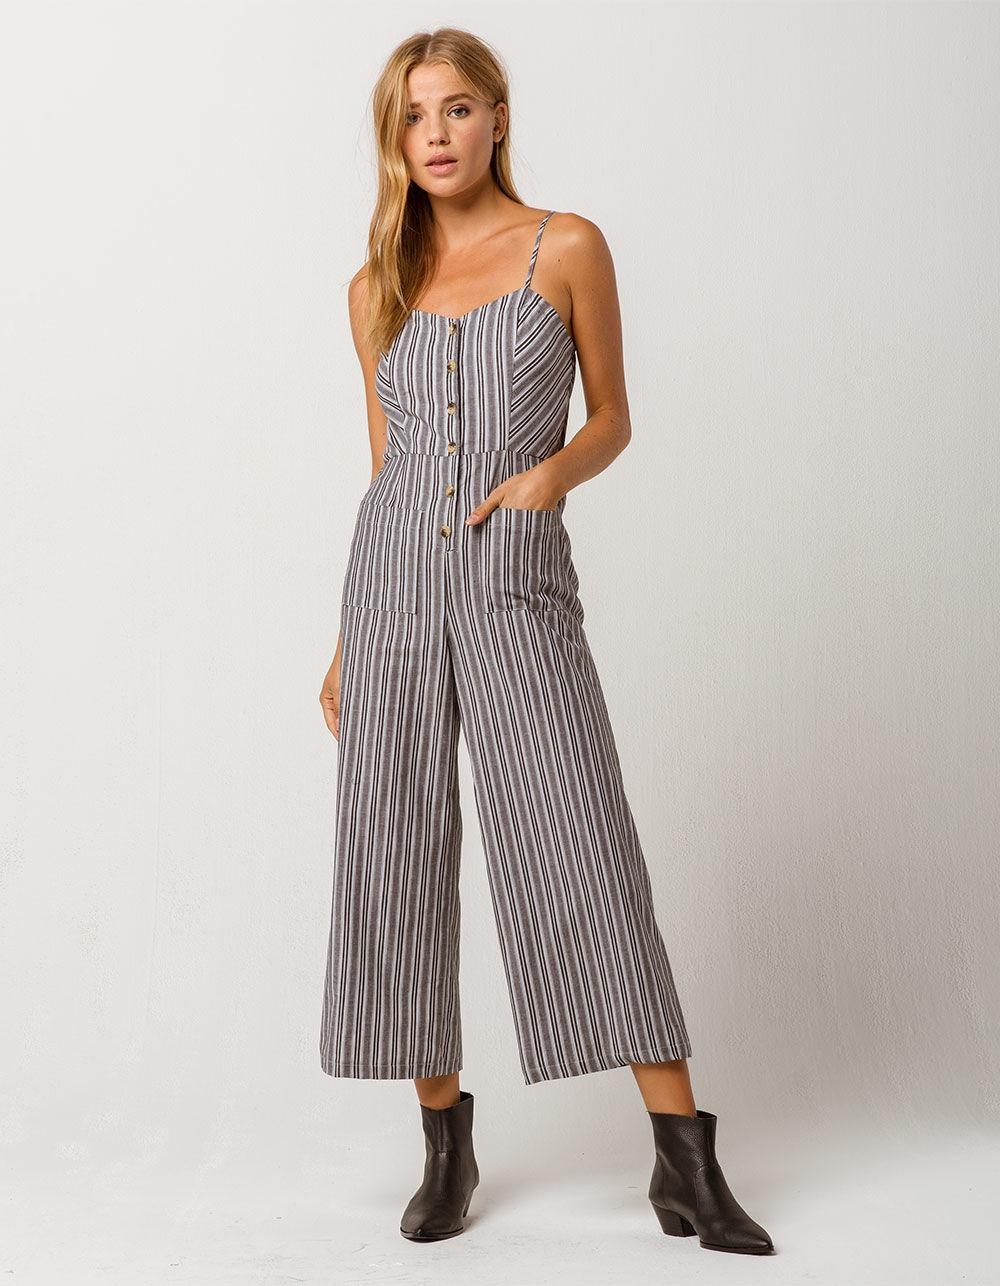 85aa9ad6fd1 Lyst - Mimi Chica Button Front Stripe Womens Jumpsuit in Black